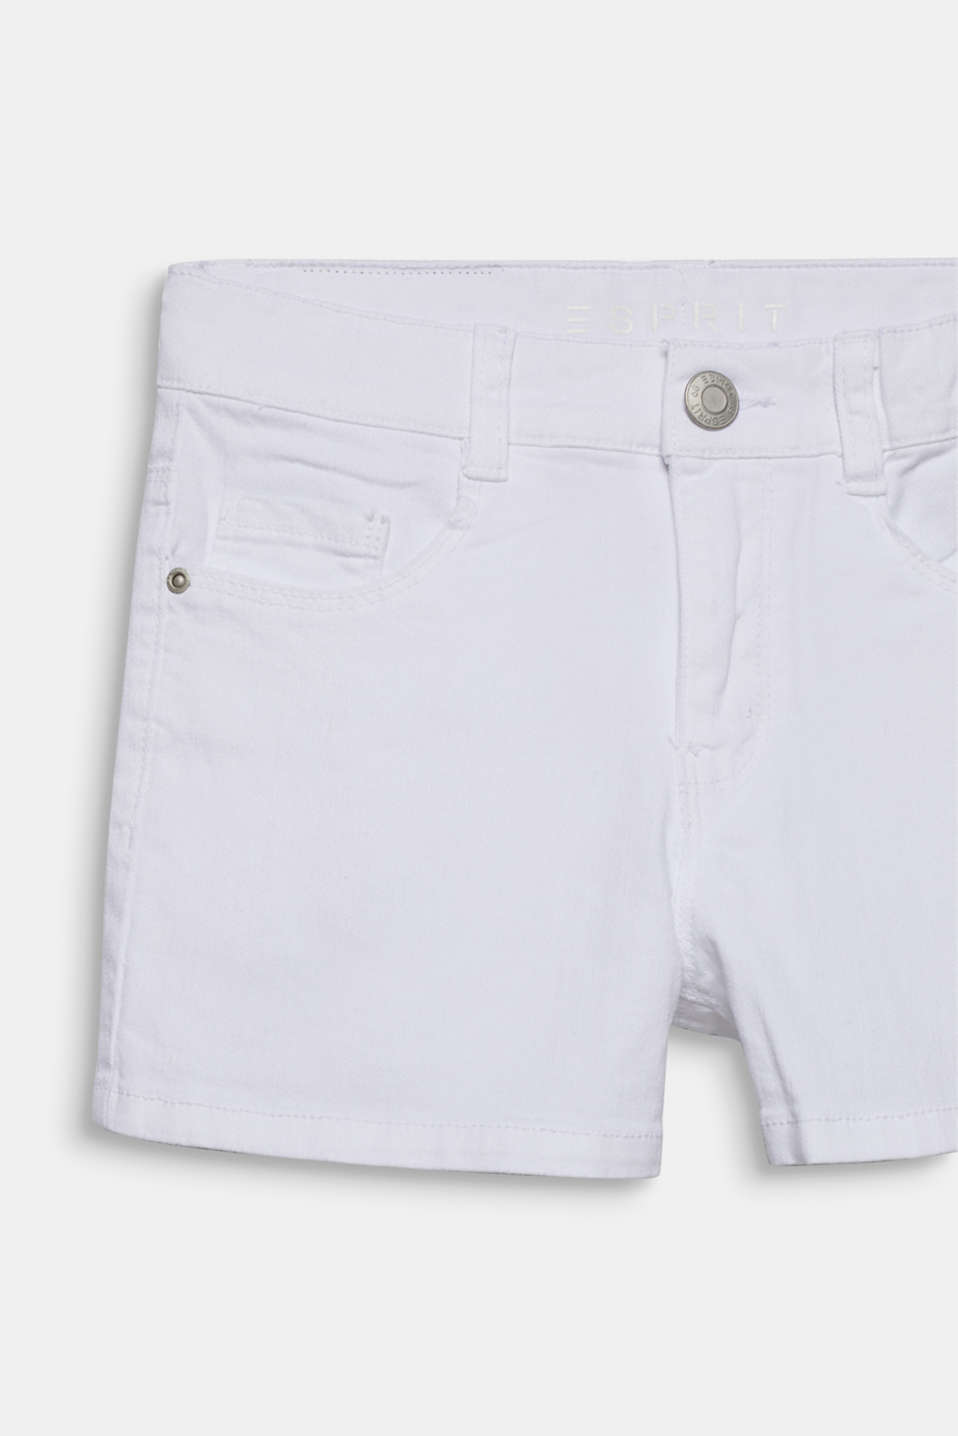 Skinny stretch denim shorts, adjustable waistband, LCWHITE, detail image number 2